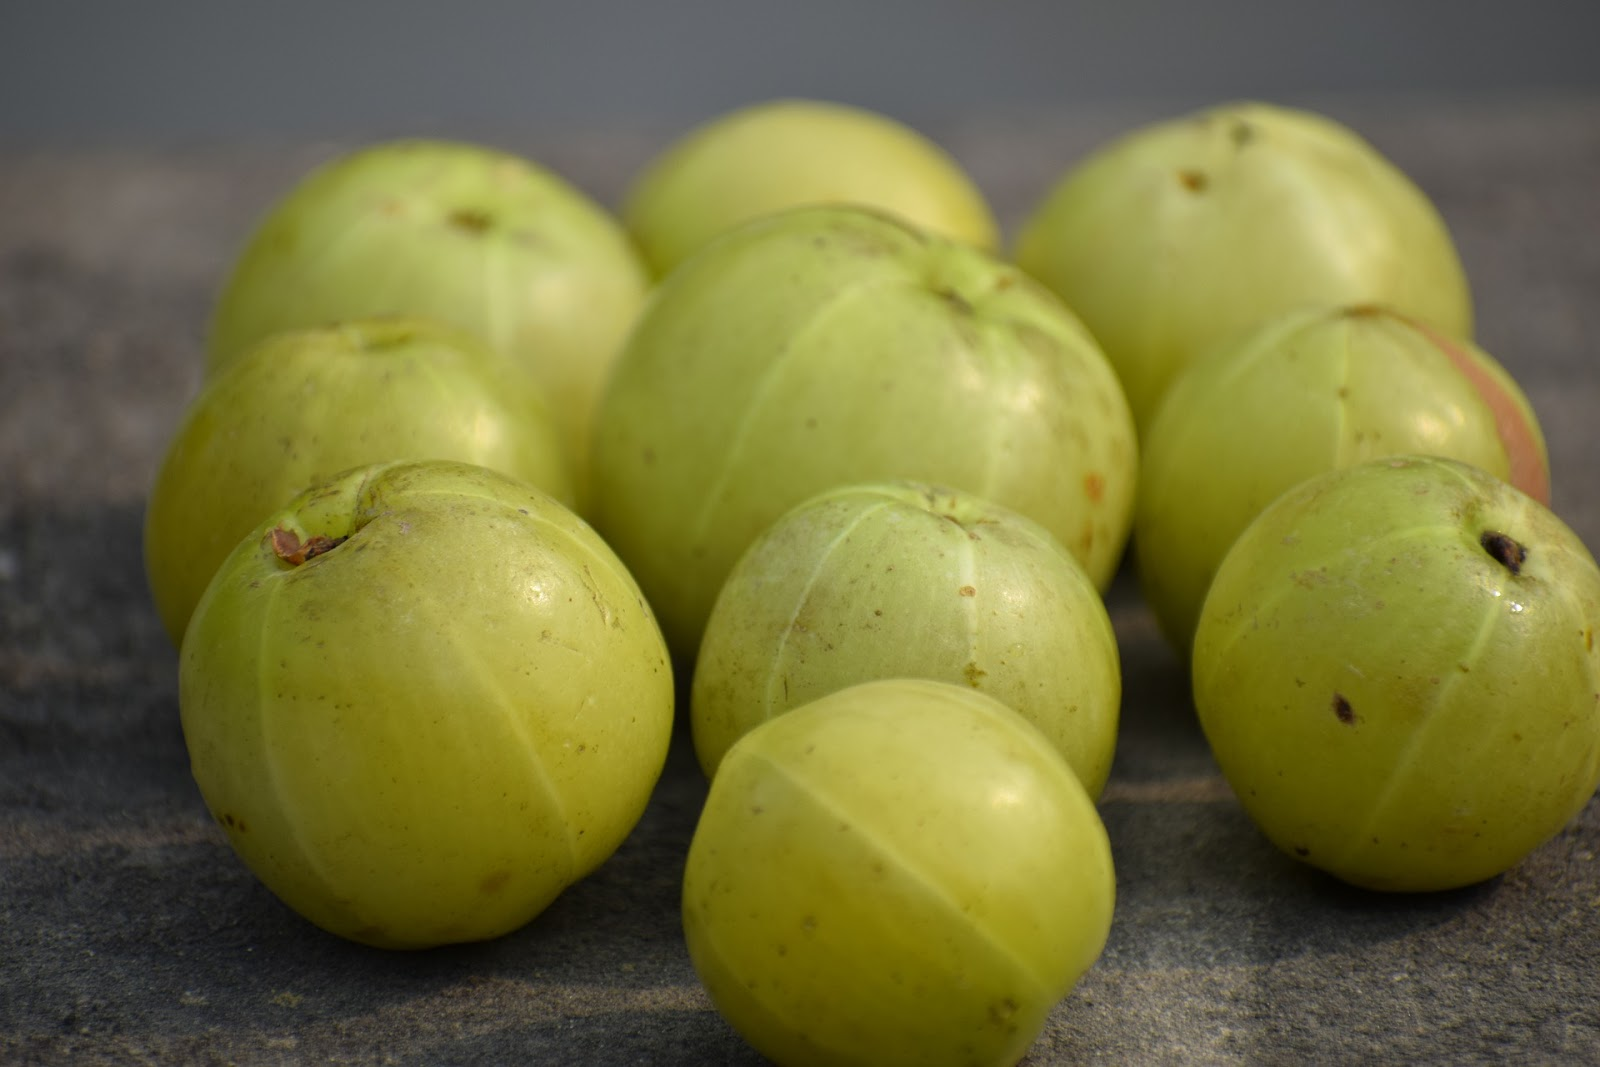 amla herb to treat diabetes type 2 naturally